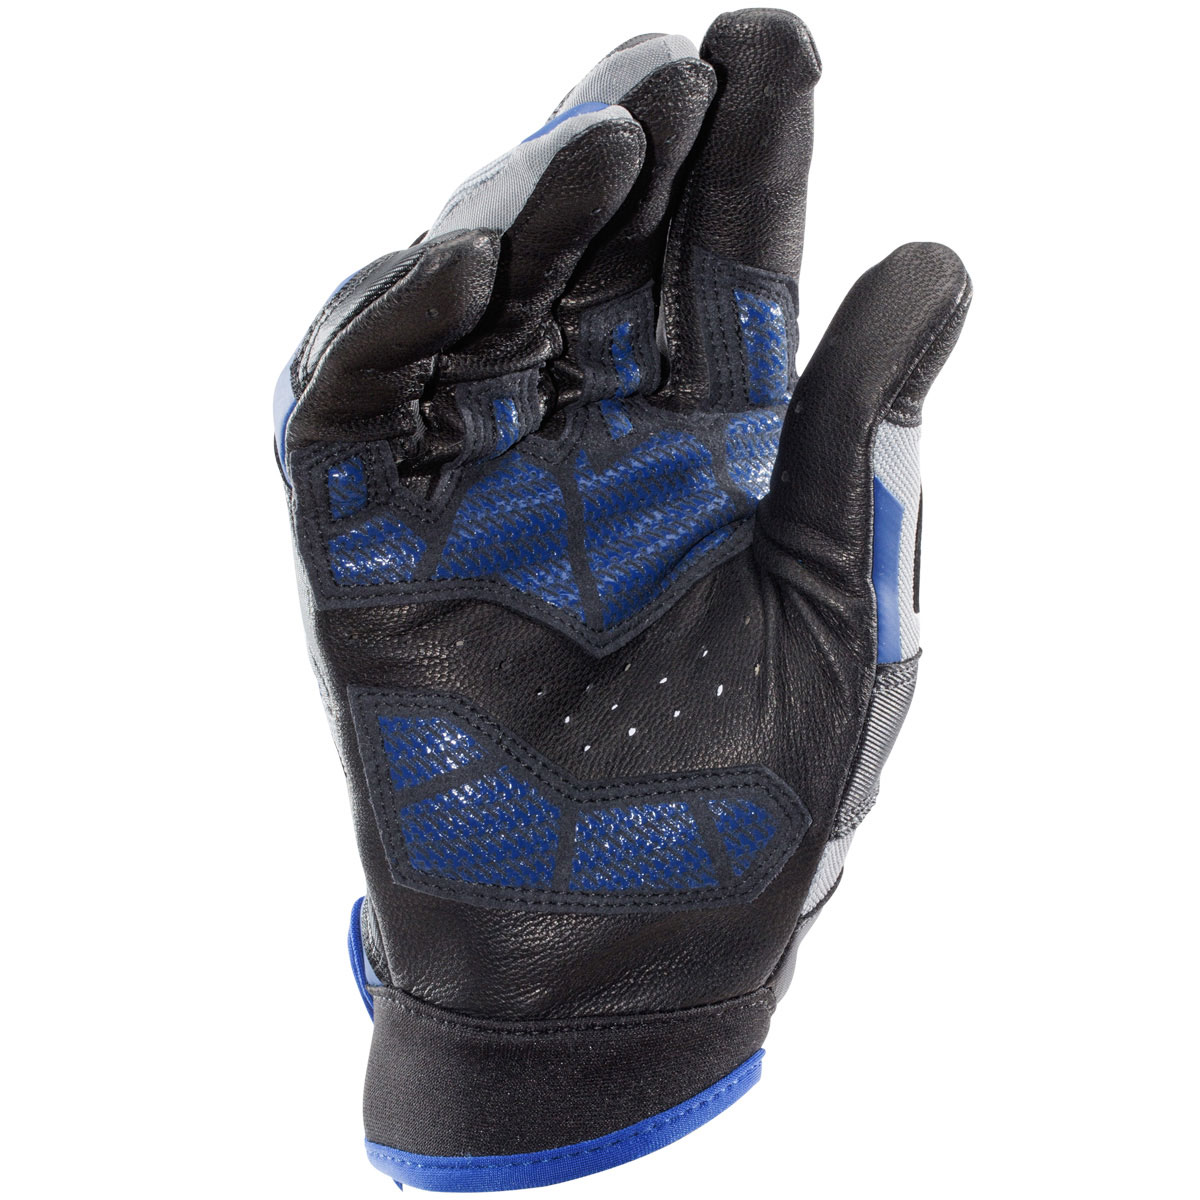 Under Armour 2015 Mens Ua Renegade Training Gloves Support